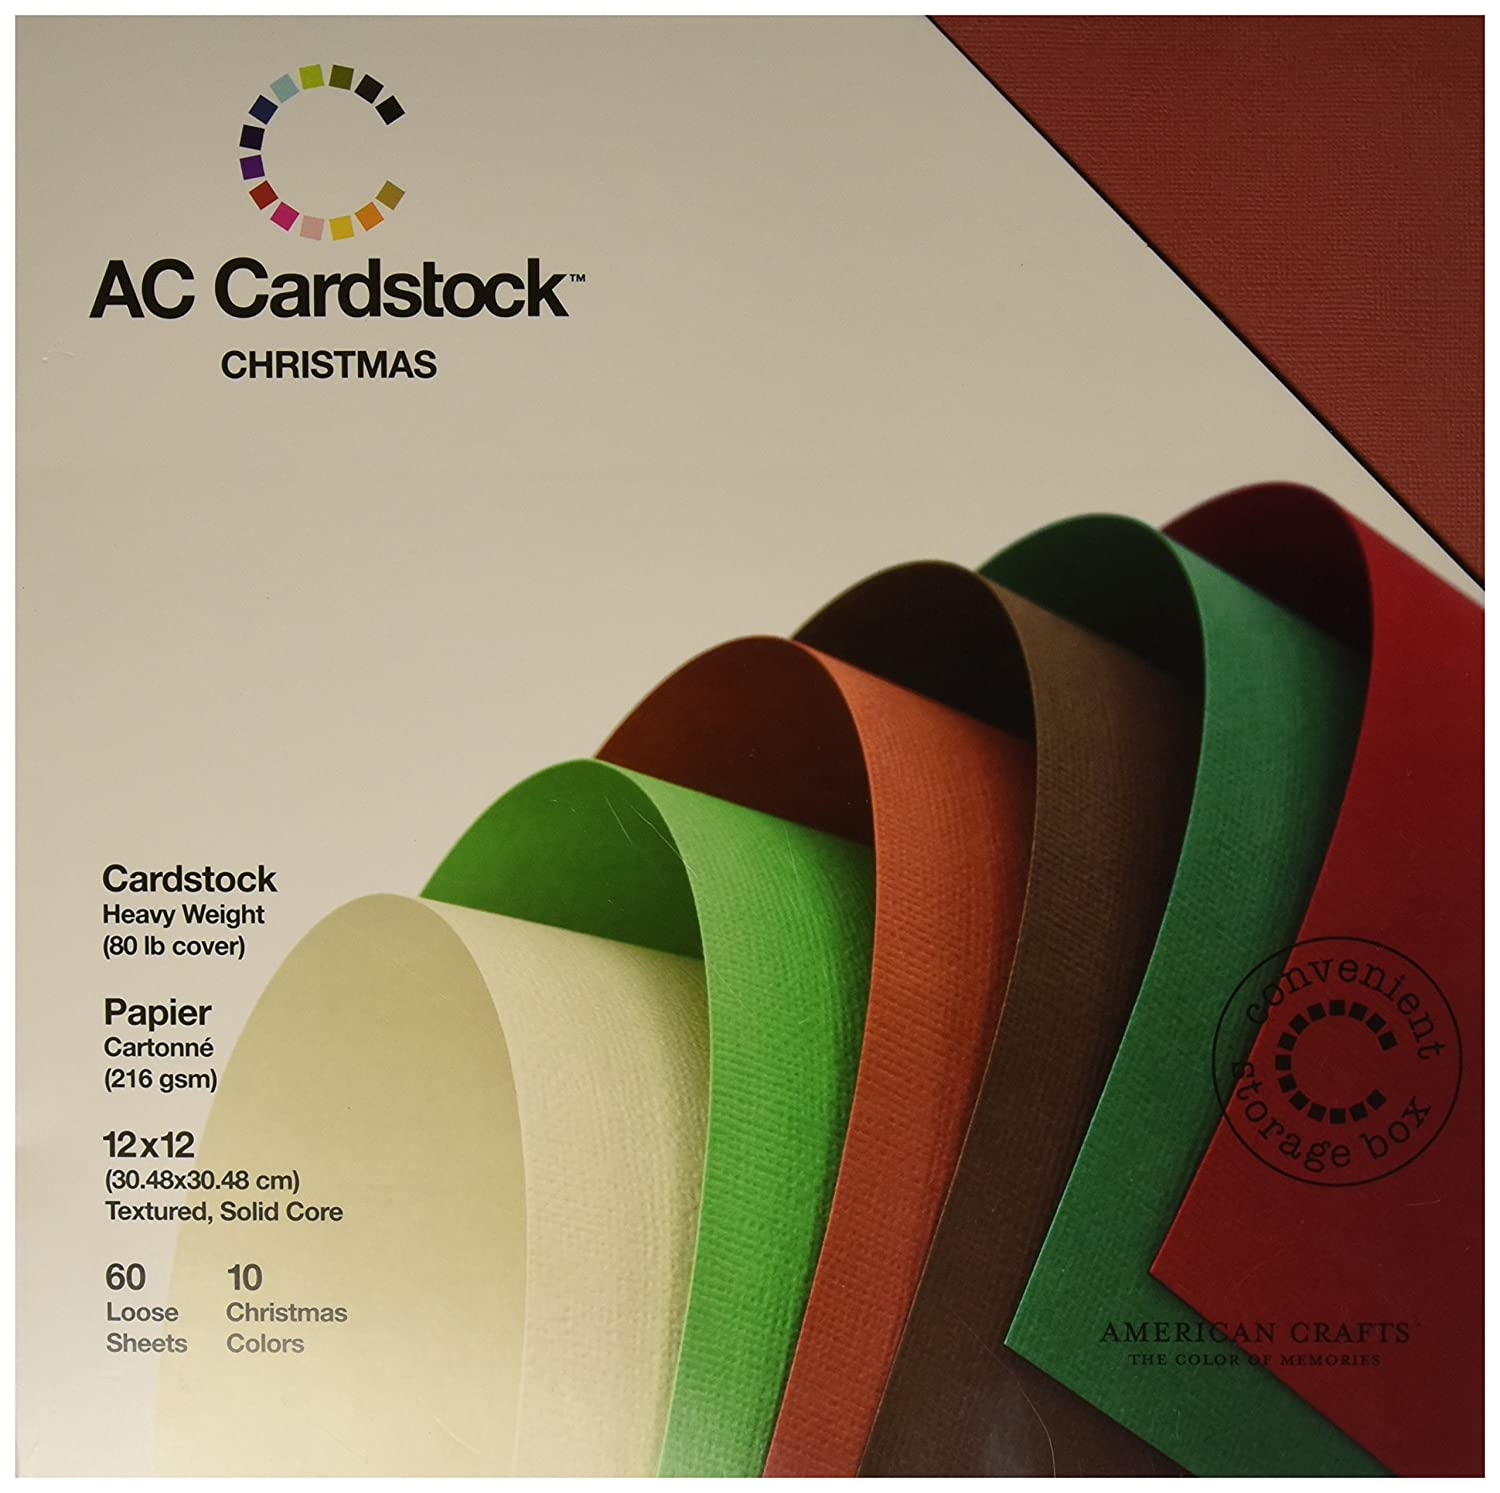 American Crafts 71259 12-Inch by 12-Inch Cardstock Variety Pack, White